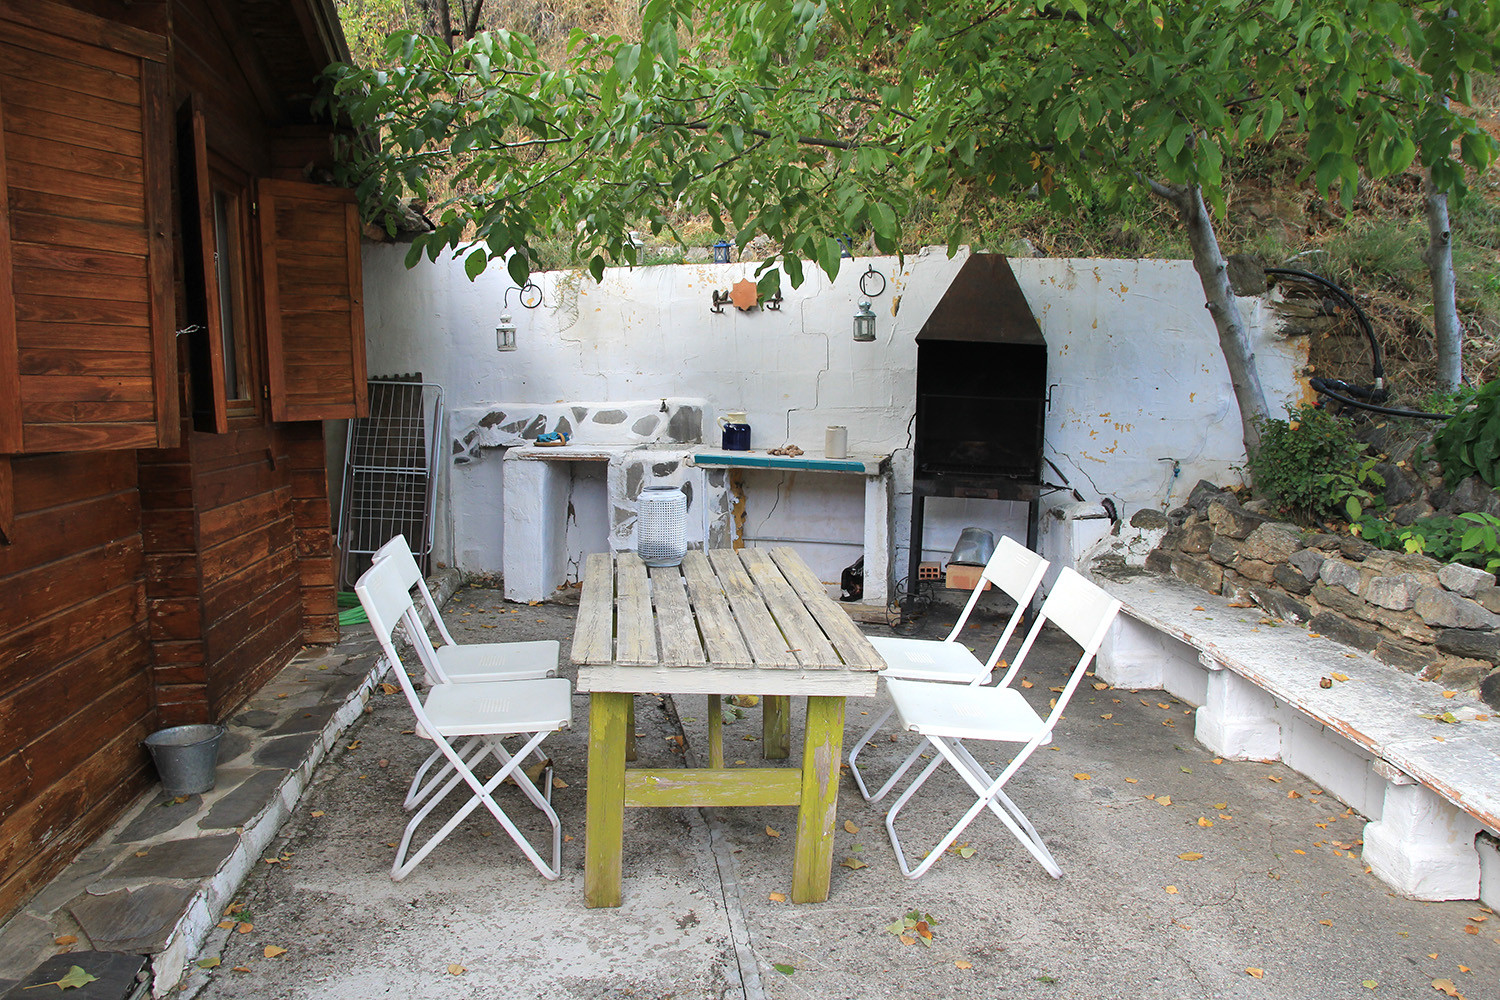 The terrace at the back of the cabin